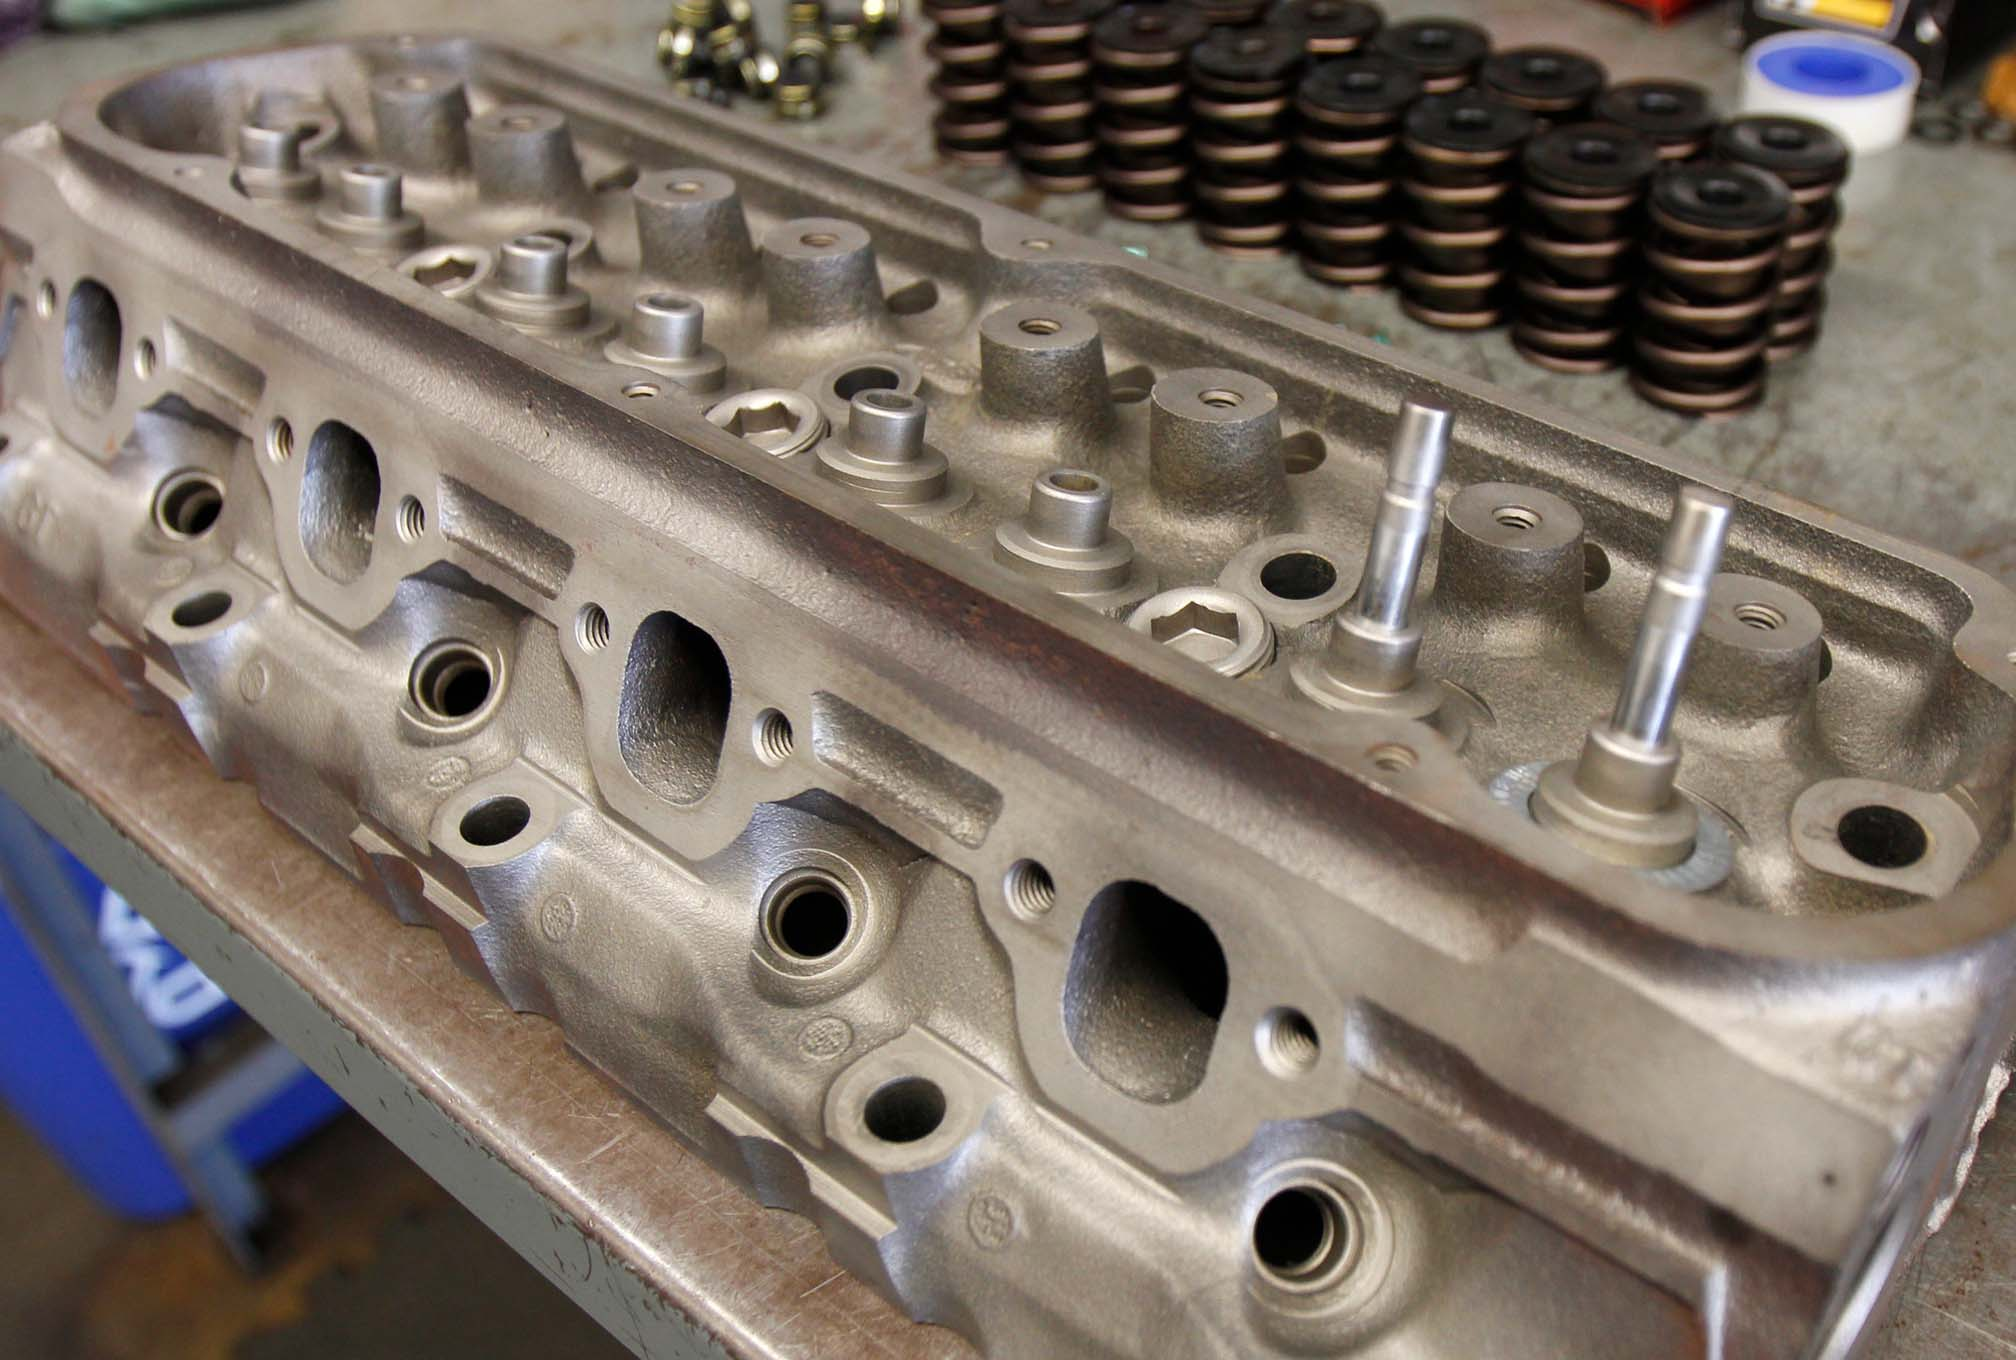 Though the stock GT40 heads were untouched (no machining, valve job, or porting), we installed Trick Flow's spring kit, which is needed because of the B303 cam's increased valve lift. In stock form, the exhaust valves had rotators installed underneath retainer; they are thick and bulky and will collide with the valve-guide boss at more than 0.450-inch valve lift. Trick Flow's kit includes higher-rate valvesprings and retainers that fit differing installed heights of the stock intake and exhaust valves. Once installed, you can safely run up to kit 0.542-inch lift with the stock valves. This is a much less expensive option than replacing all the valves.